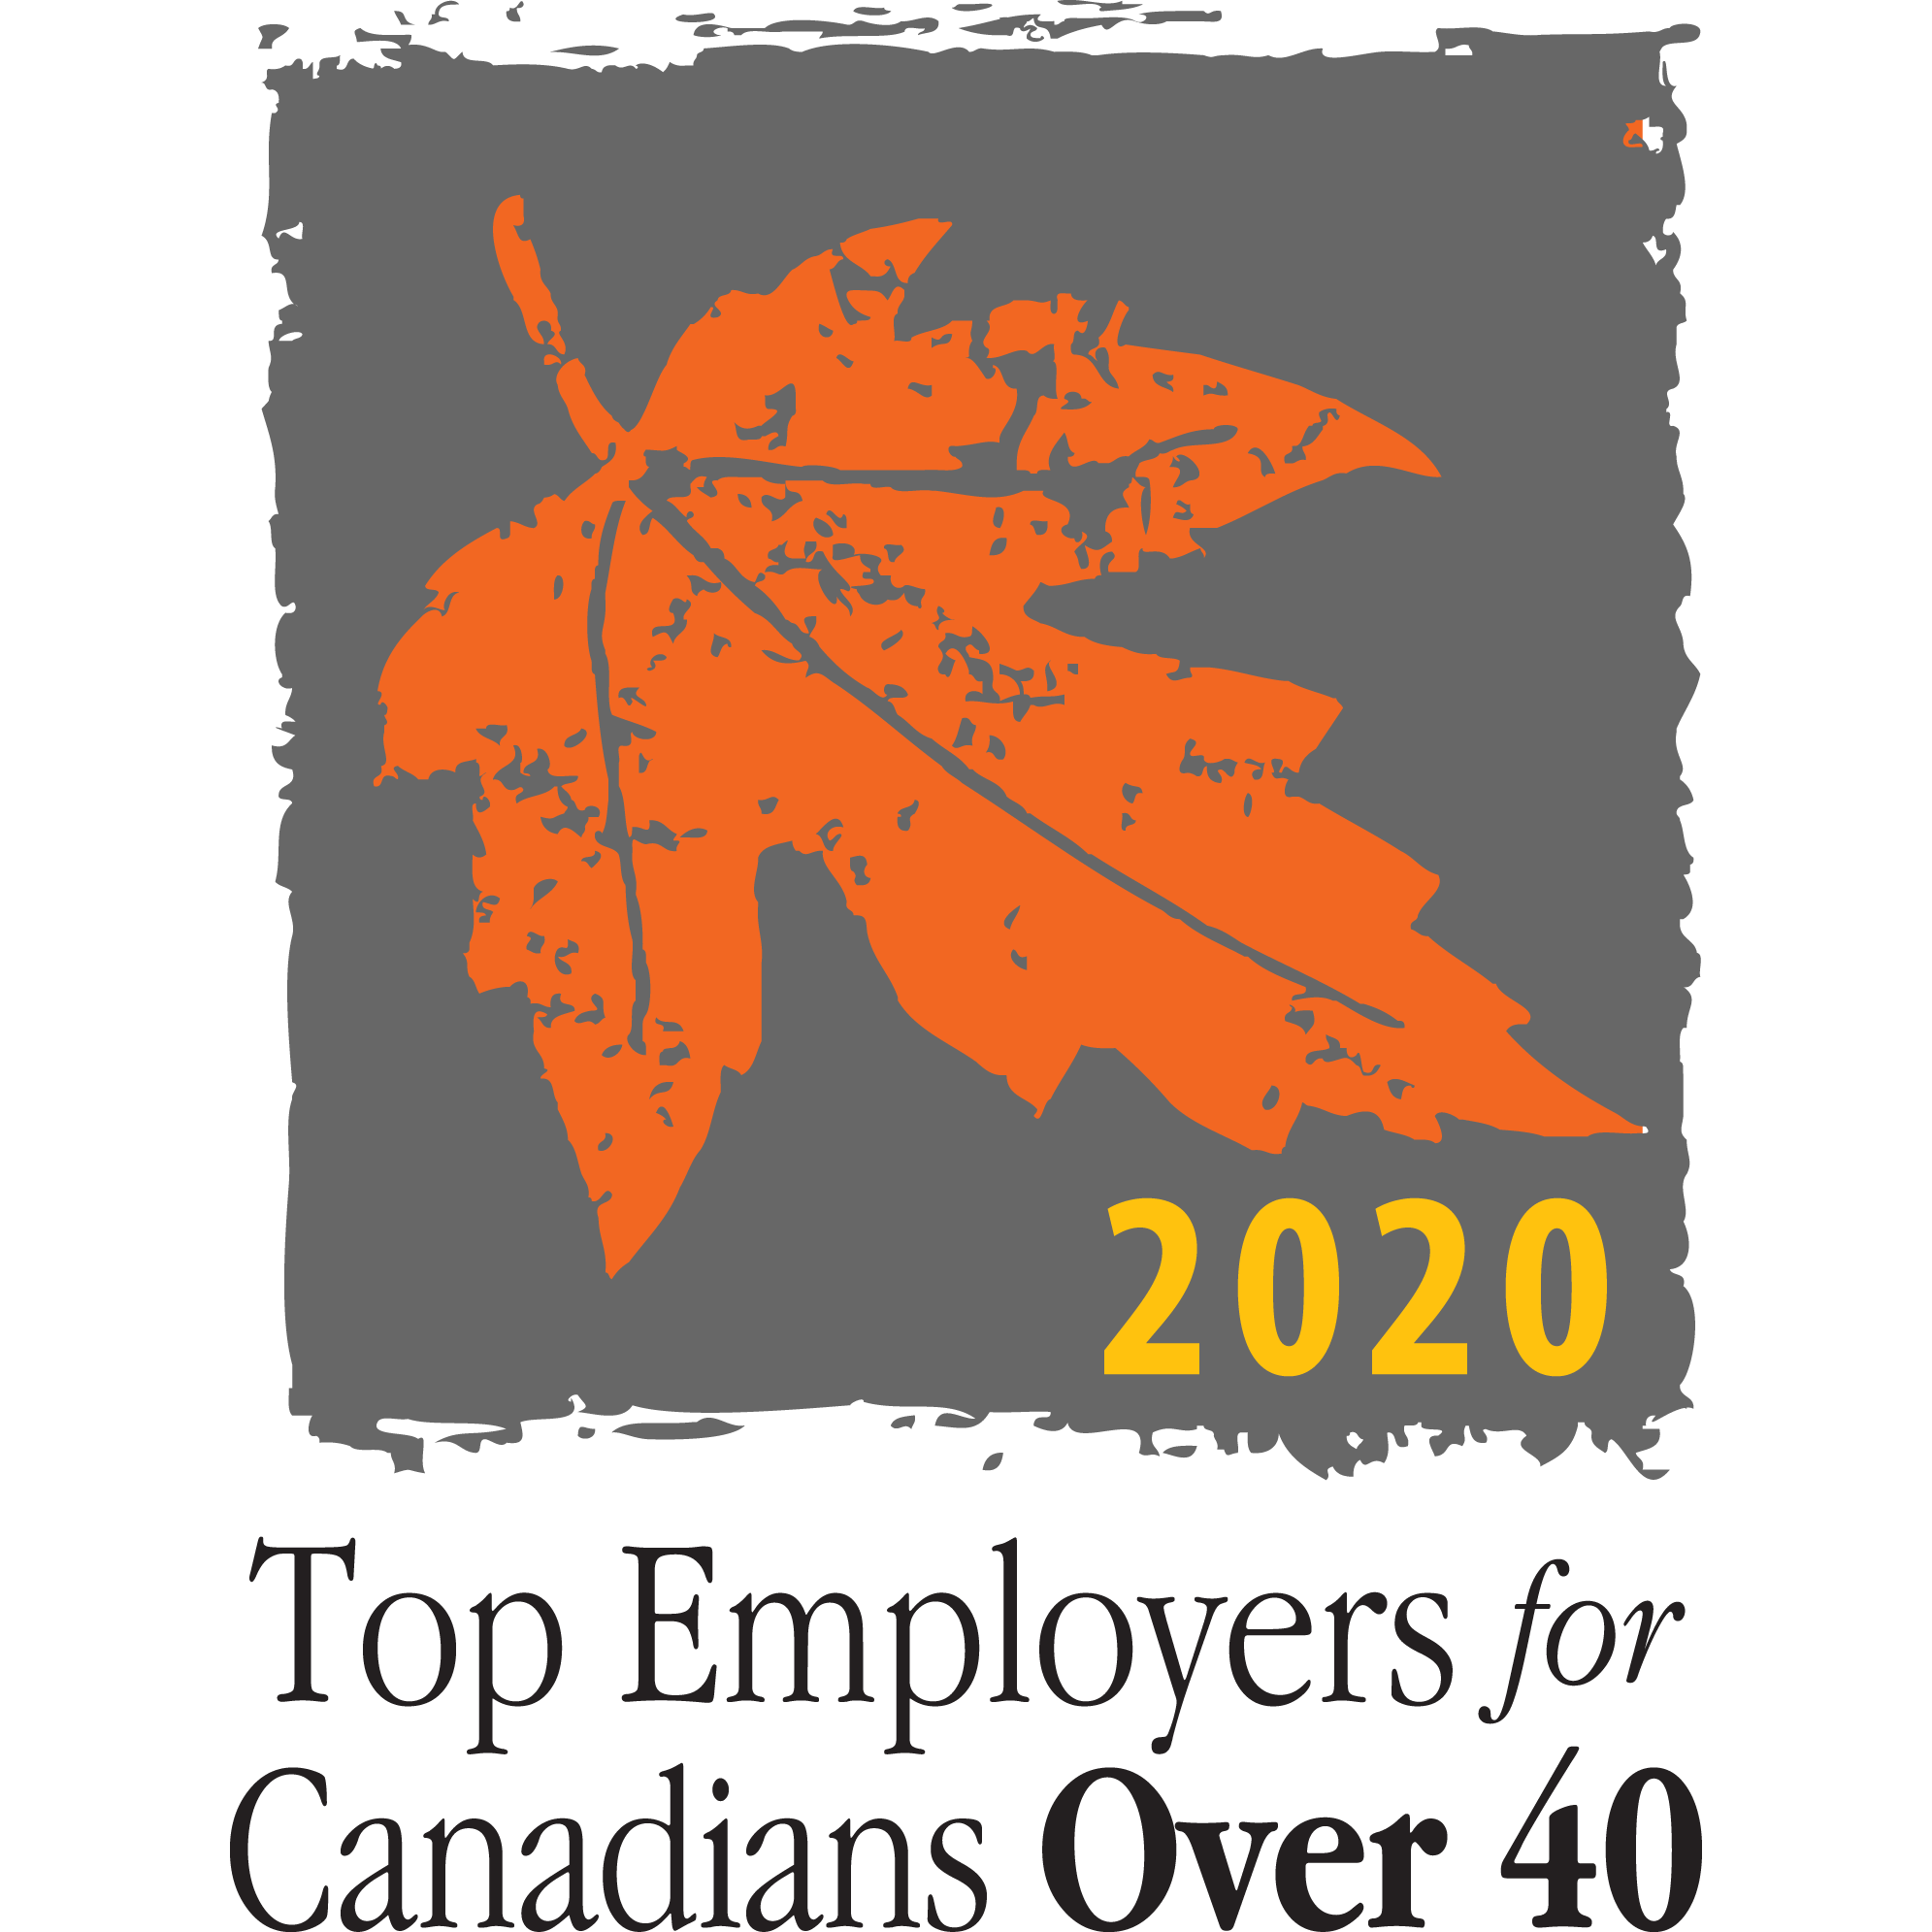 One of Canada's top employers for Canadians over 40